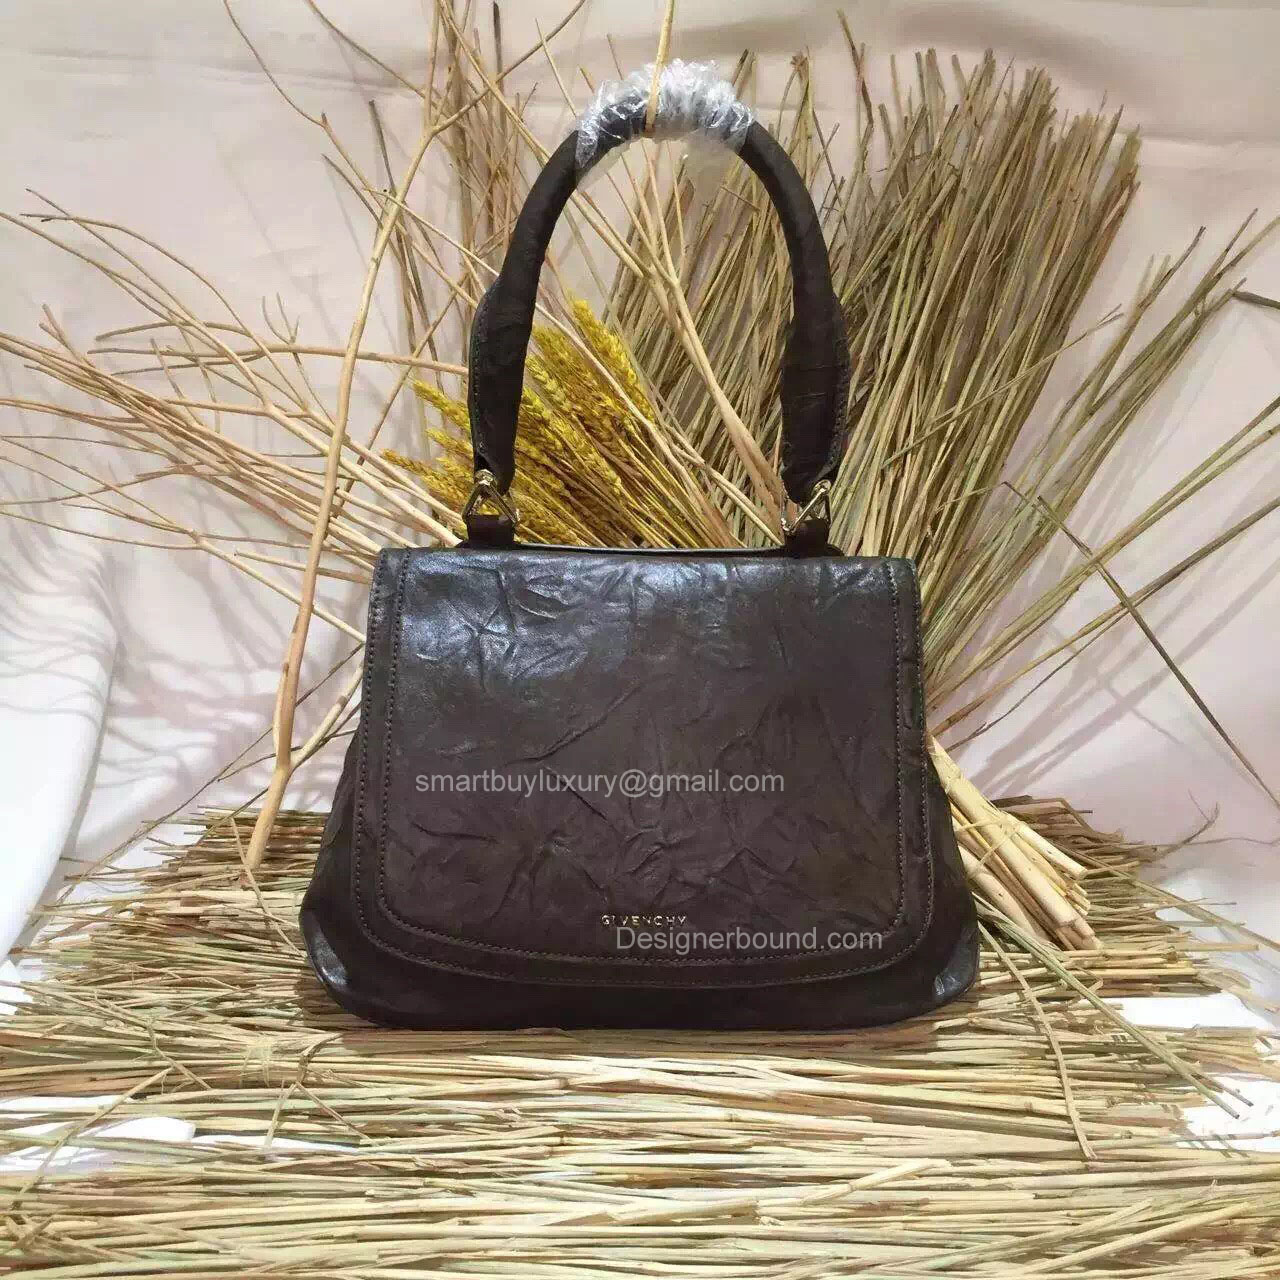 Givenchy Large Mirte Saddle Bag Khaki 285176